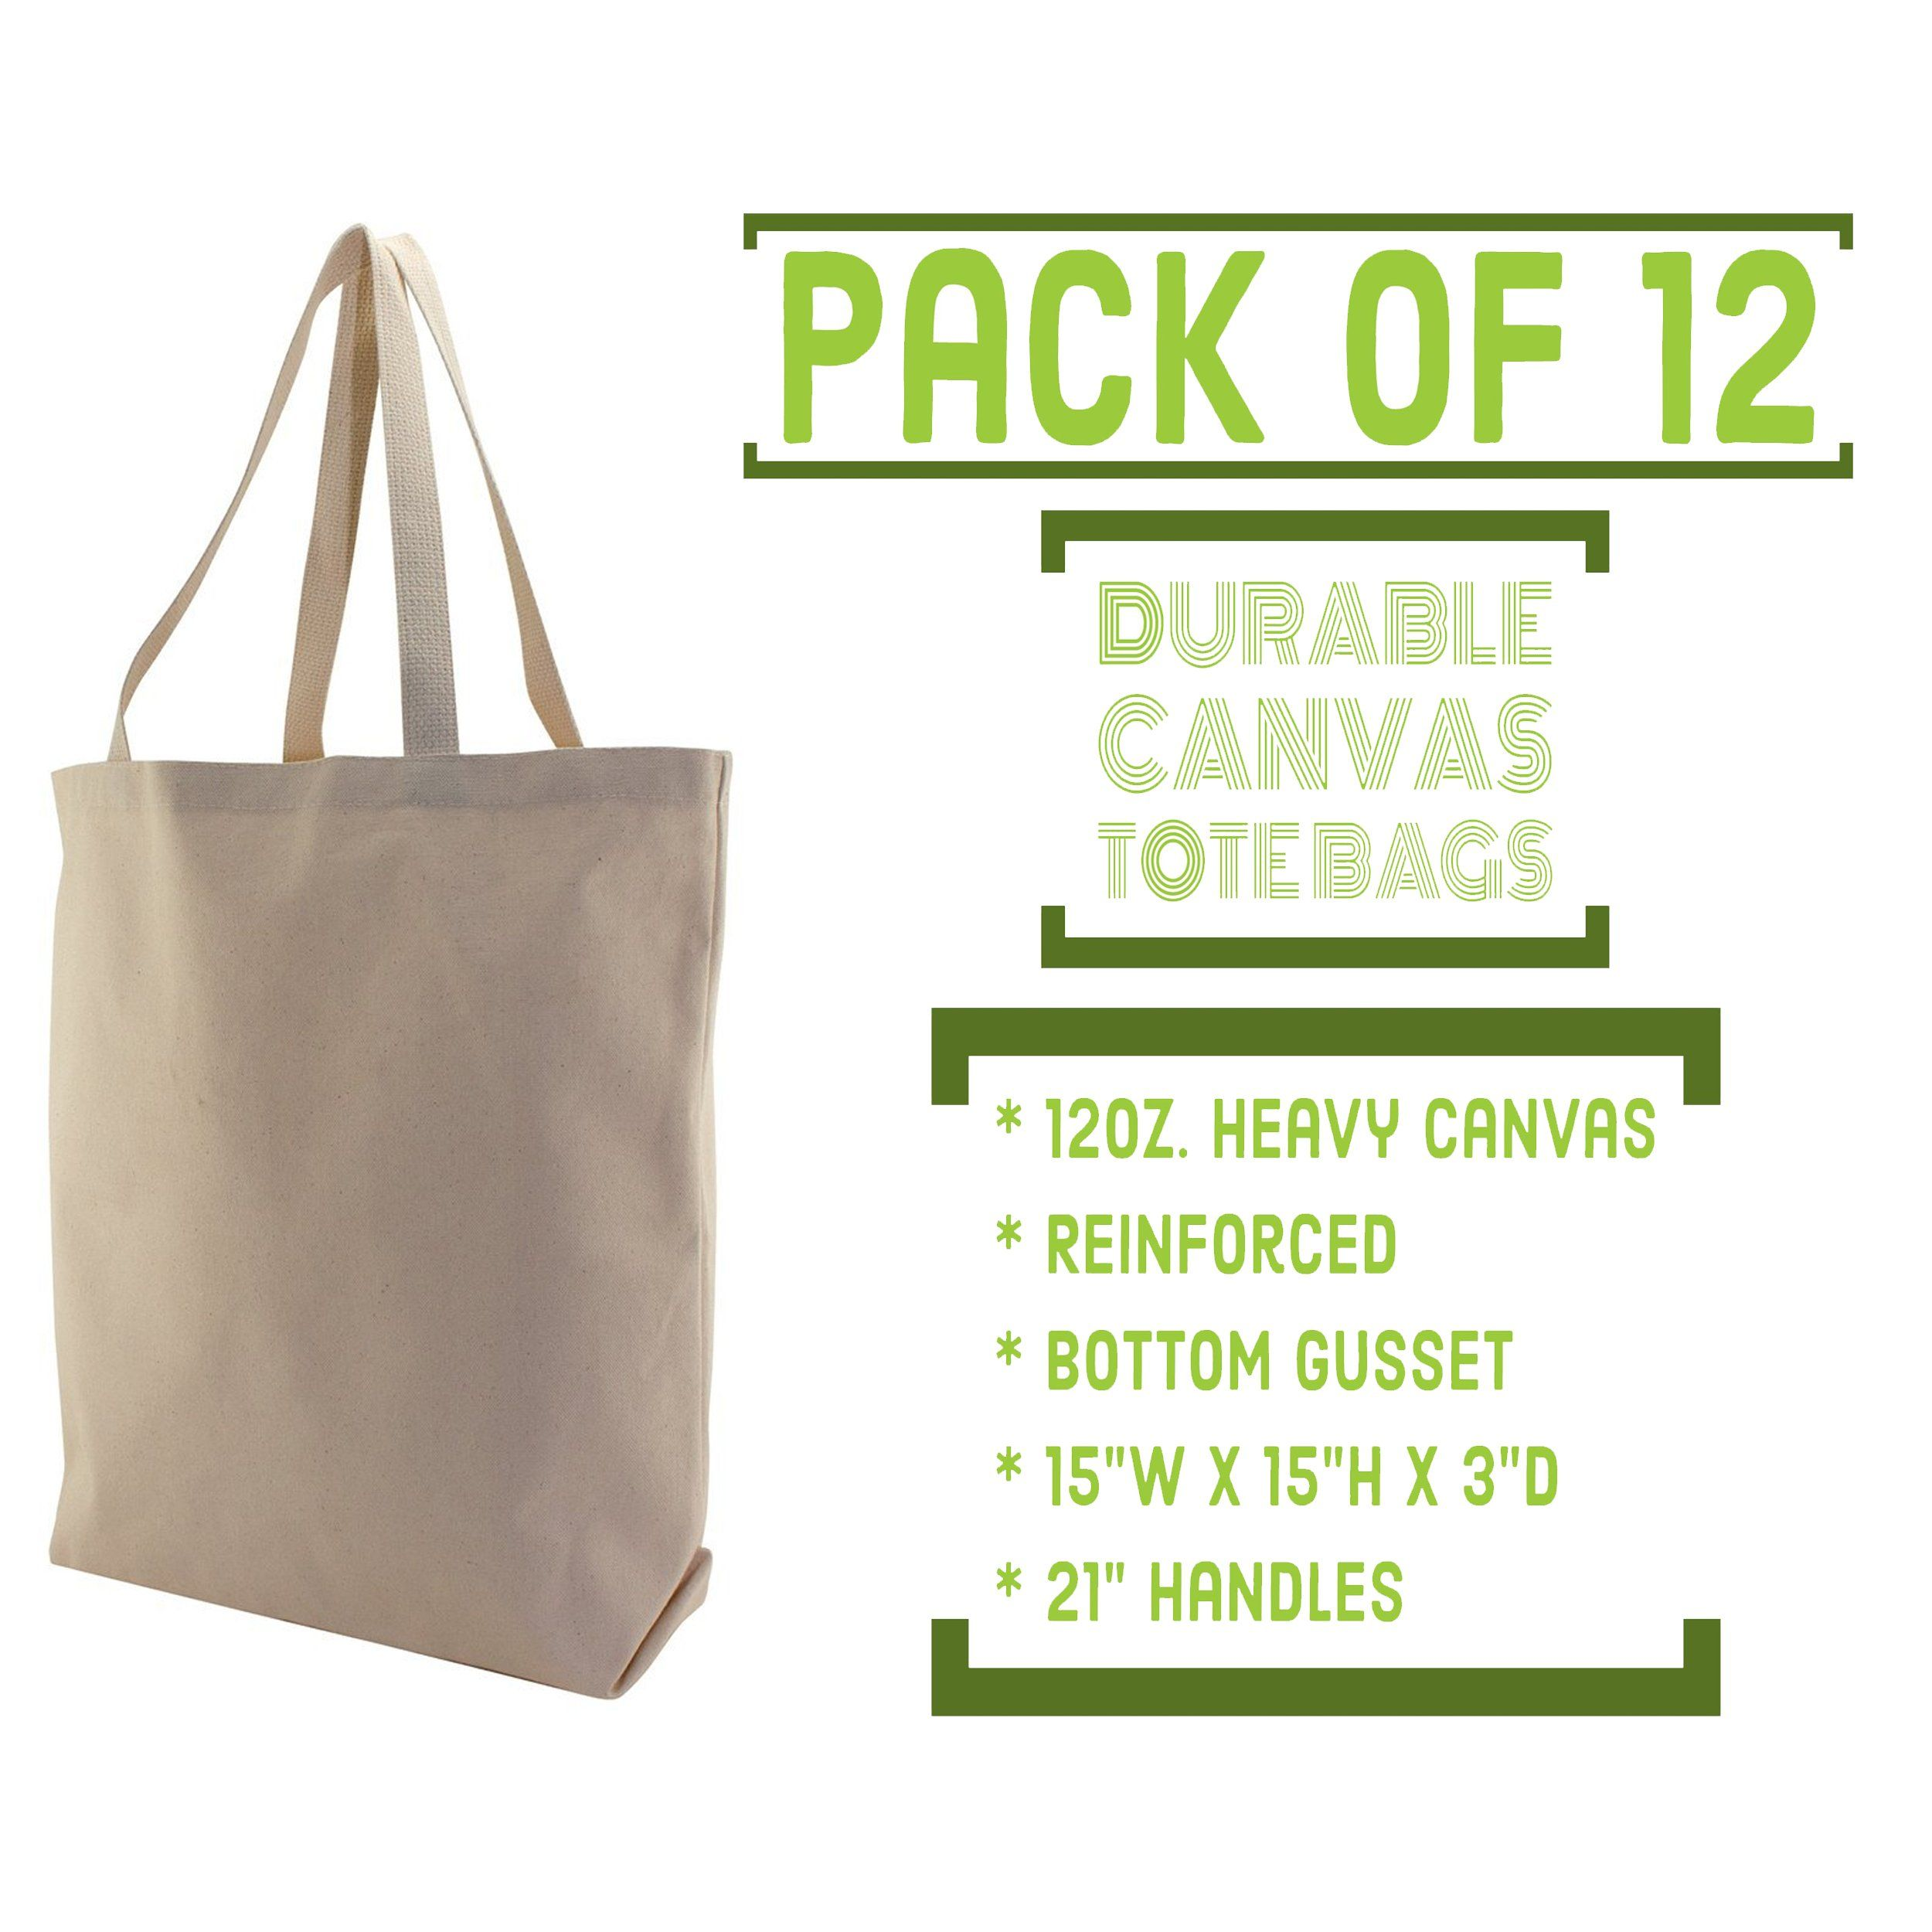 ed38dd79624 BagzDepot Reusable Grocery Shopping Bags 12 Pack Canvas Heavy Duty Tote  Bags Bulk